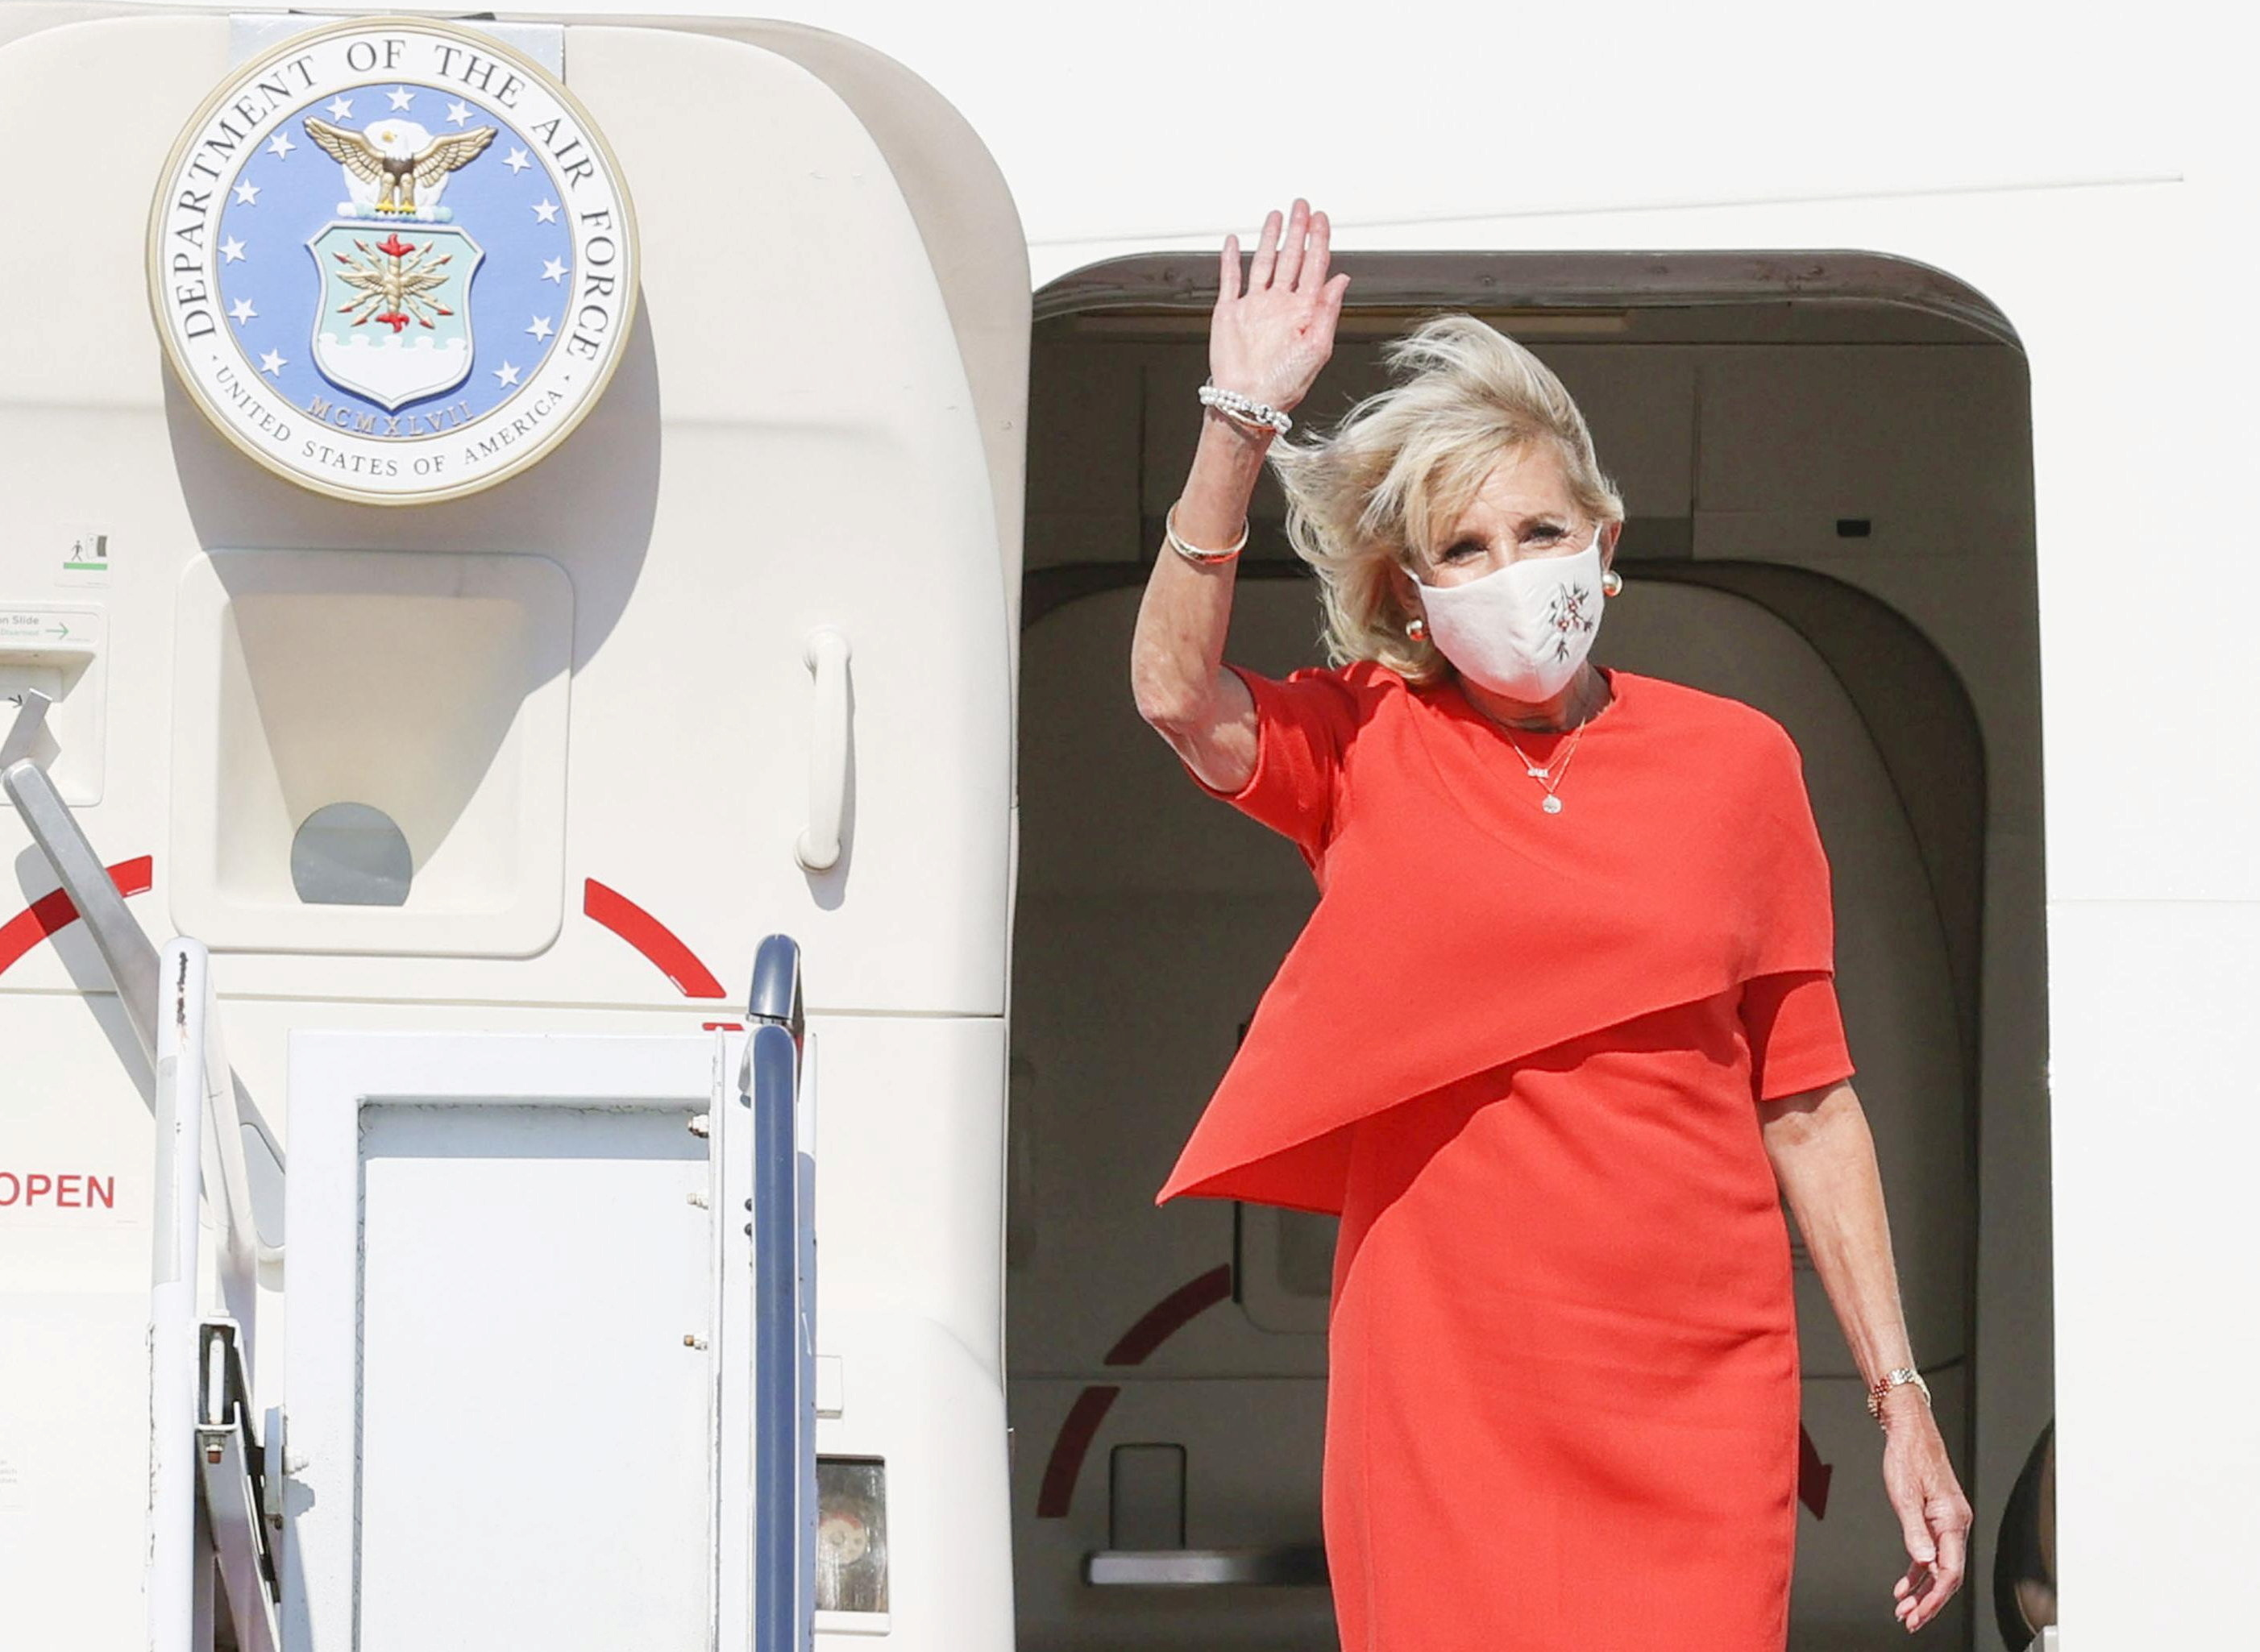 U.S. First Lady Jill Biden arrives at Yokota Air Base to attend the opening ceremony of the Tokyo 2020 Olympic Games in Tokyo, Japan, July 22, 2021, in this photo released by Kyodo. Mandatory credit Kyodo/via REUTERS